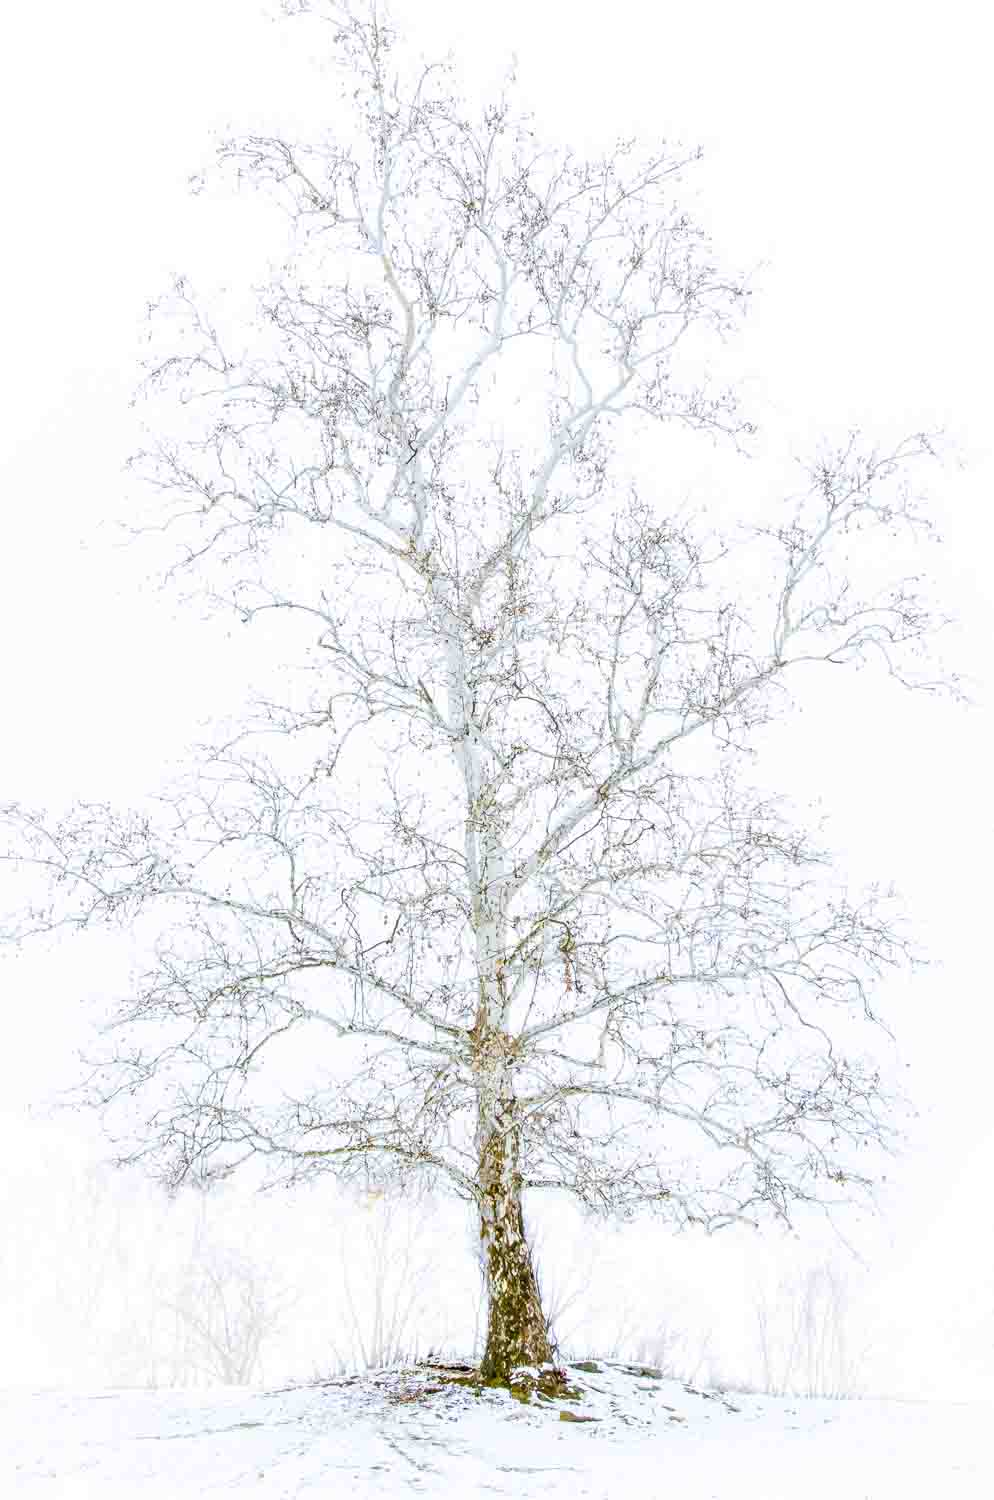 Sycamore in Winter